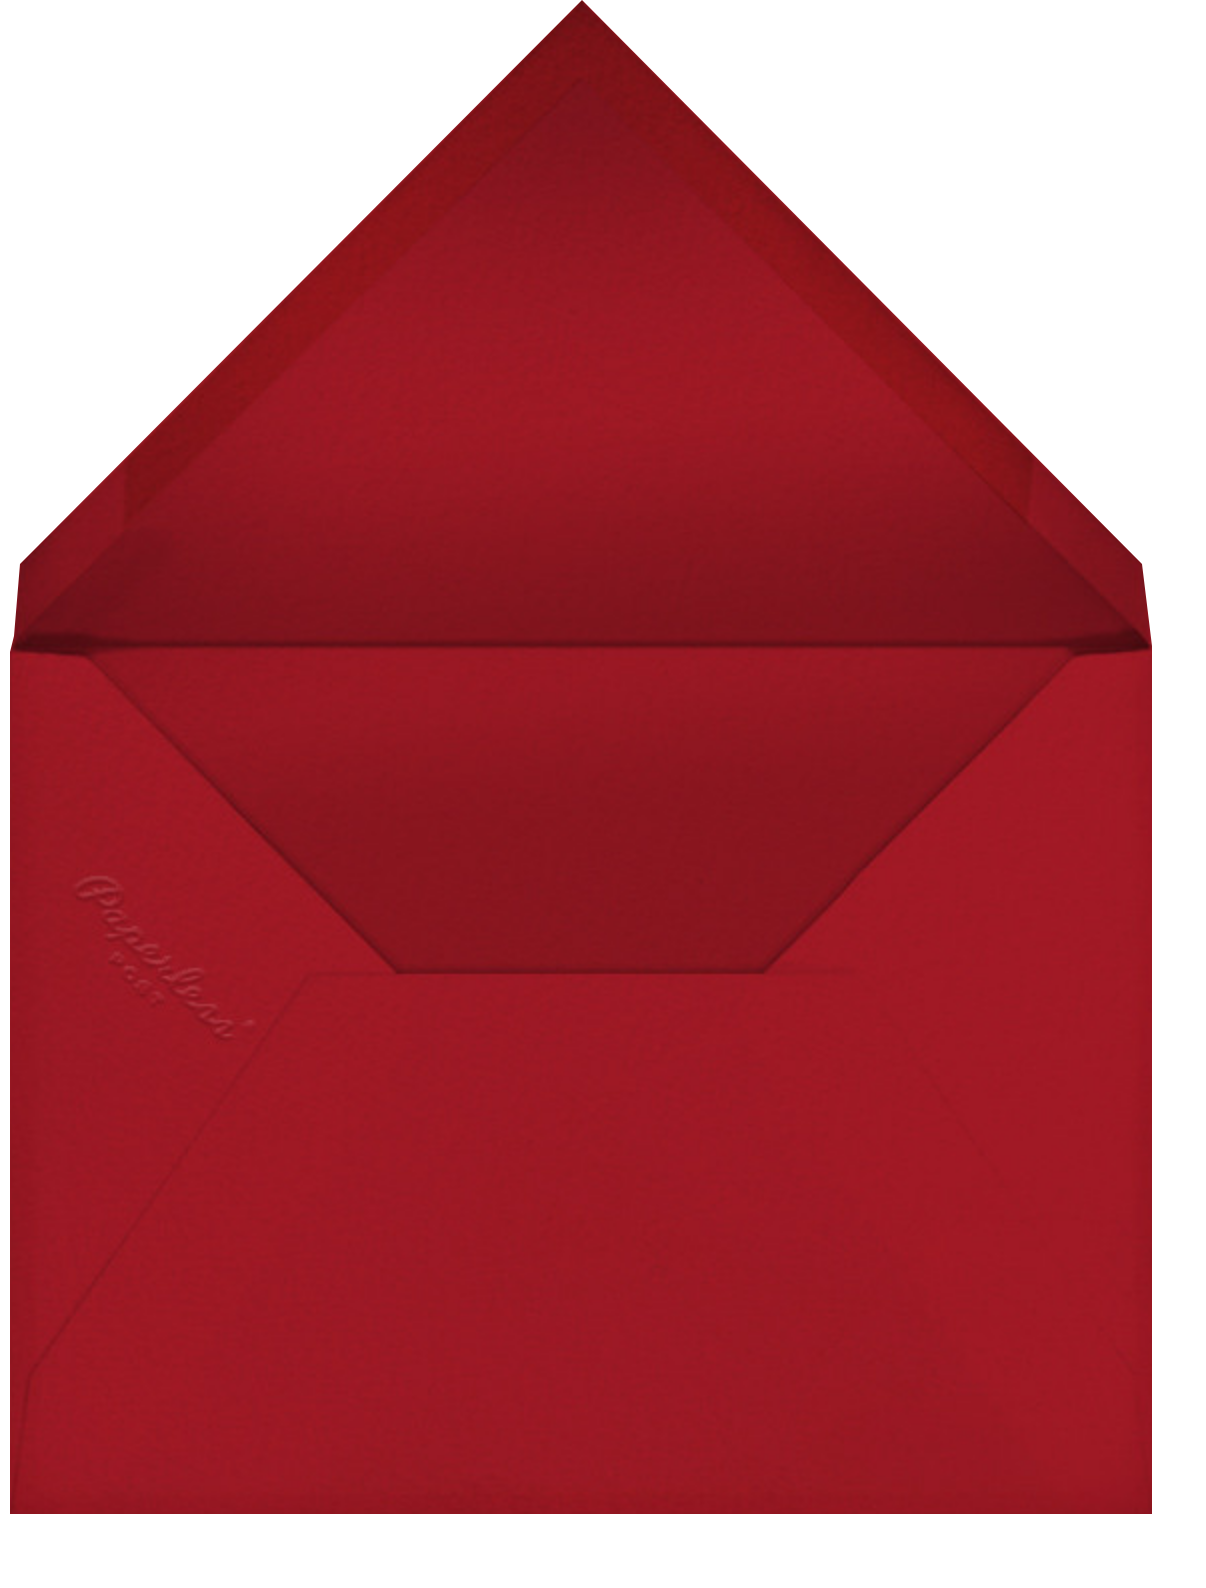 Happy Chinese New Year - Photo - Paperless Post - Lunar New Year - envelope back